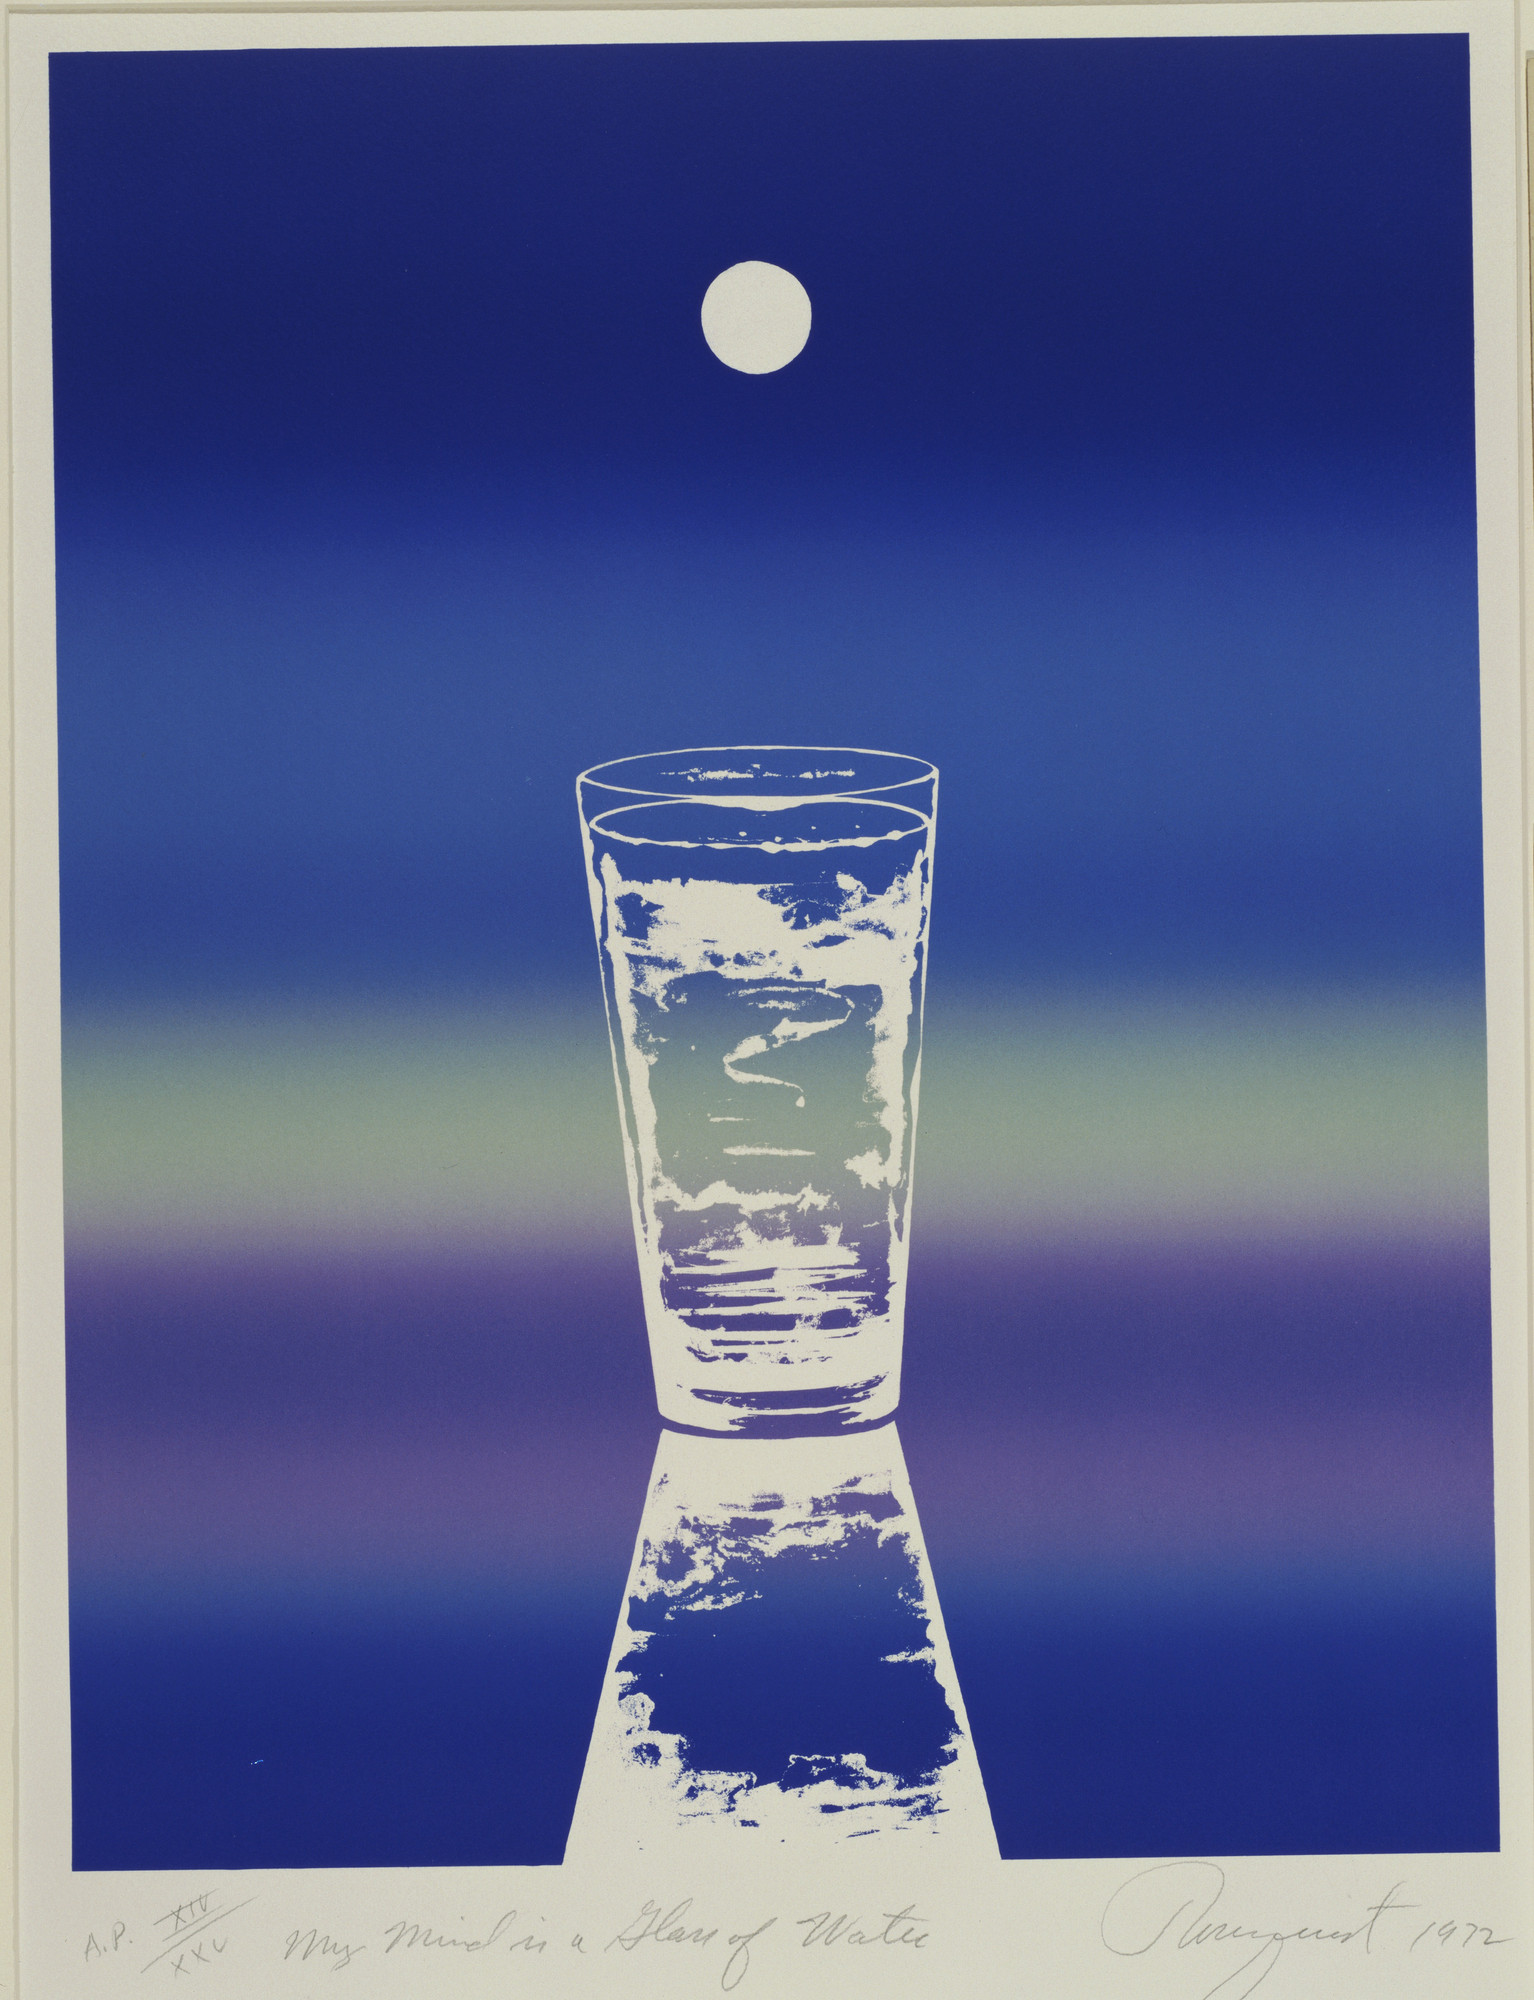 James Rosenquist. My Mind Is a Glass of Water from Prints for Phoenix House. 1972